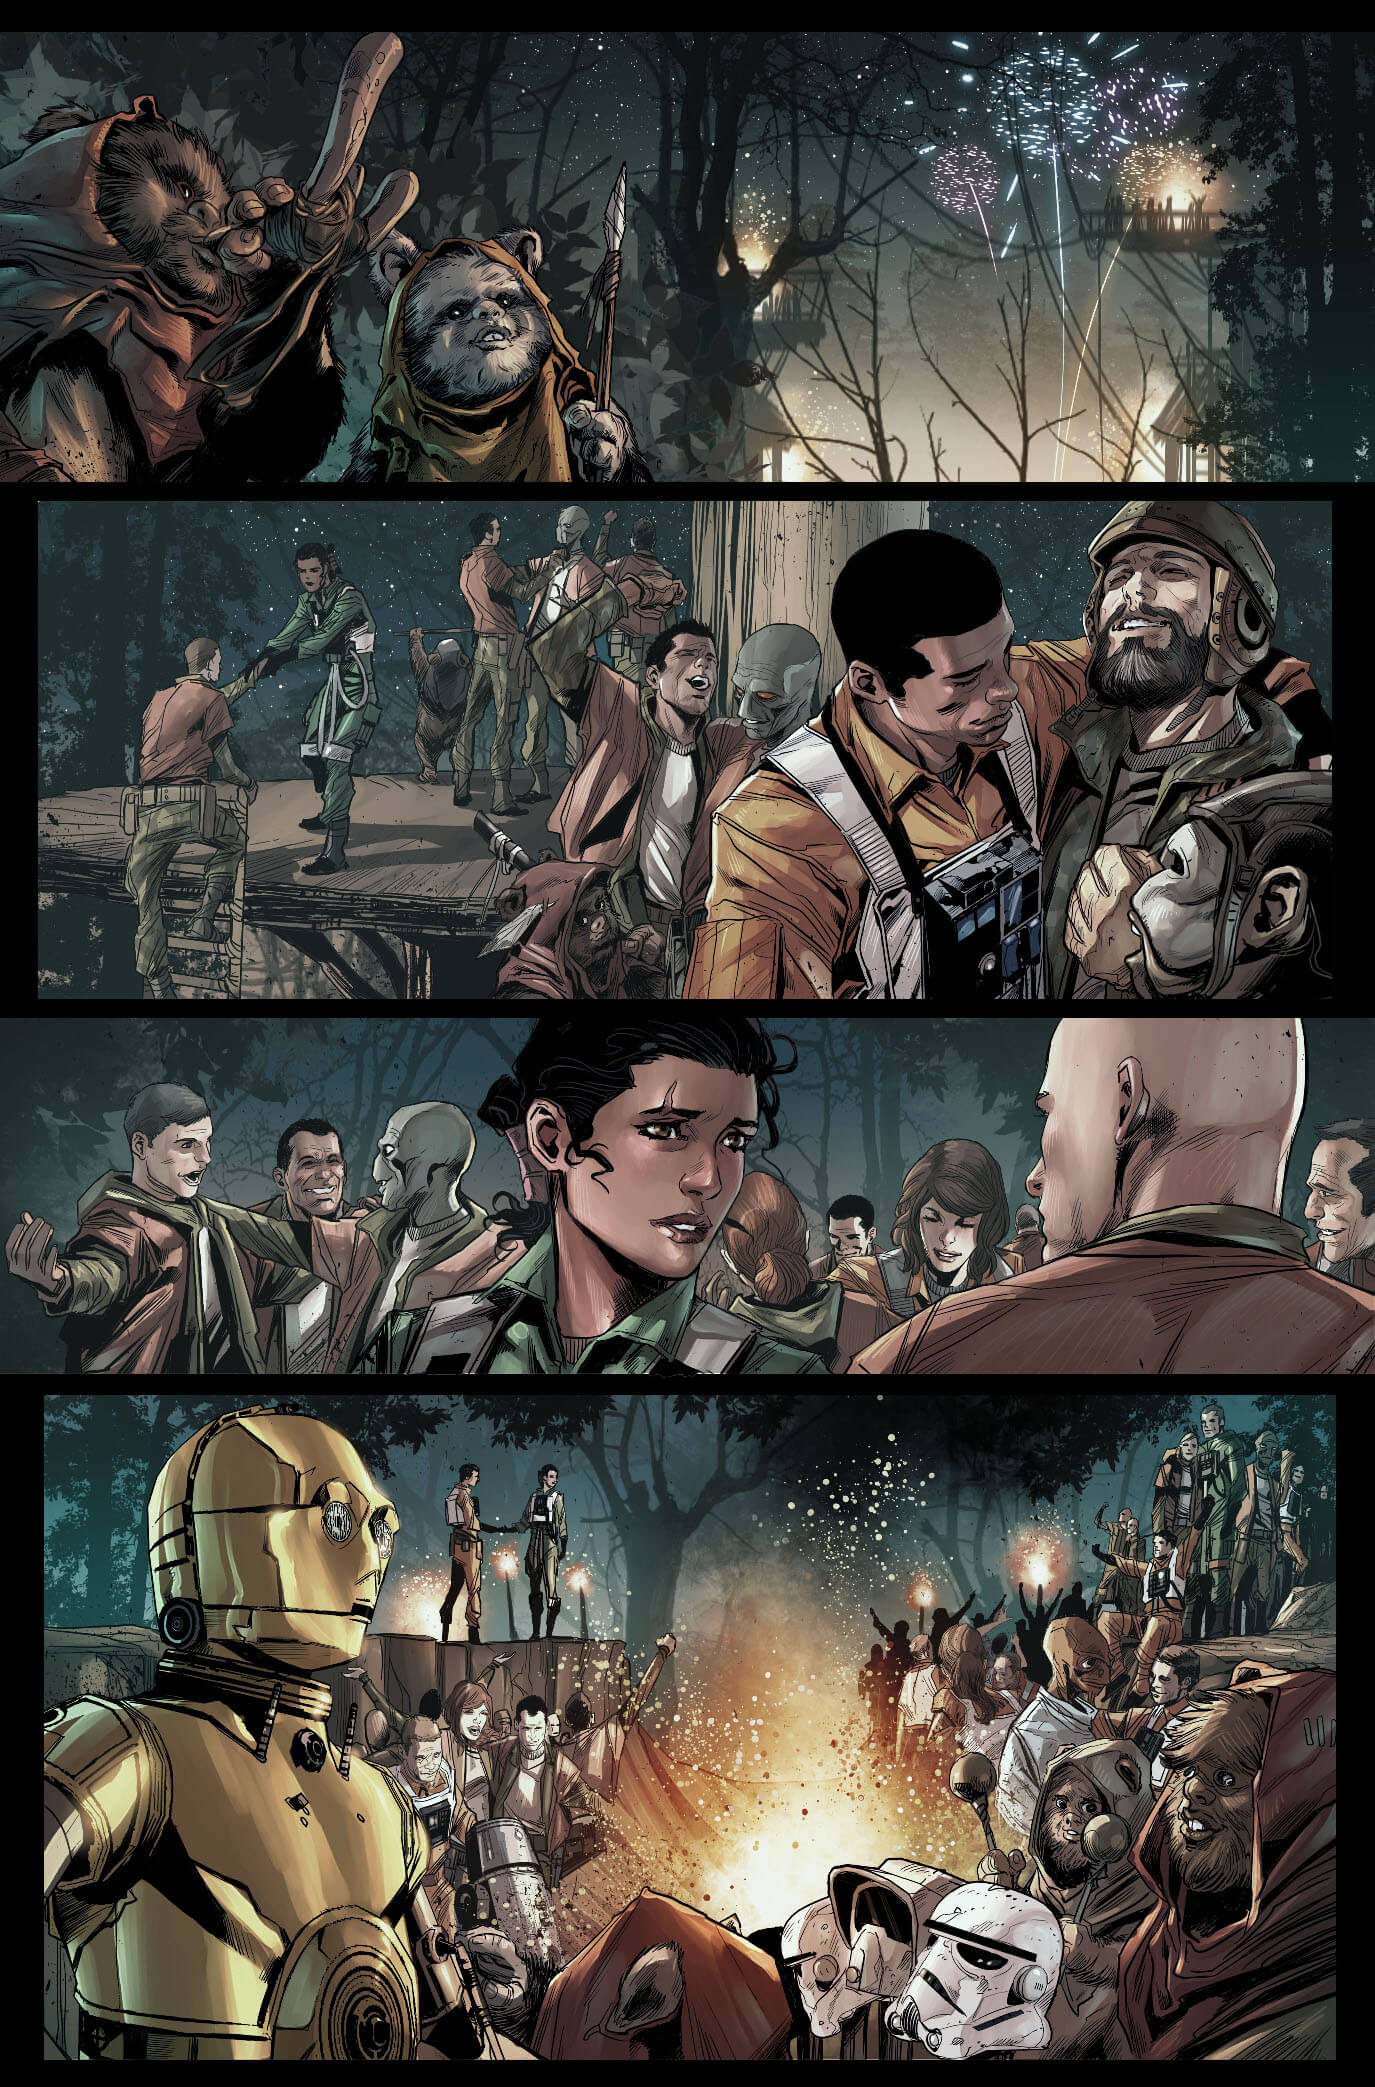 Journey_to_Star_Wars_The_Force_Awakens_Shattered_Empire_Preview_3